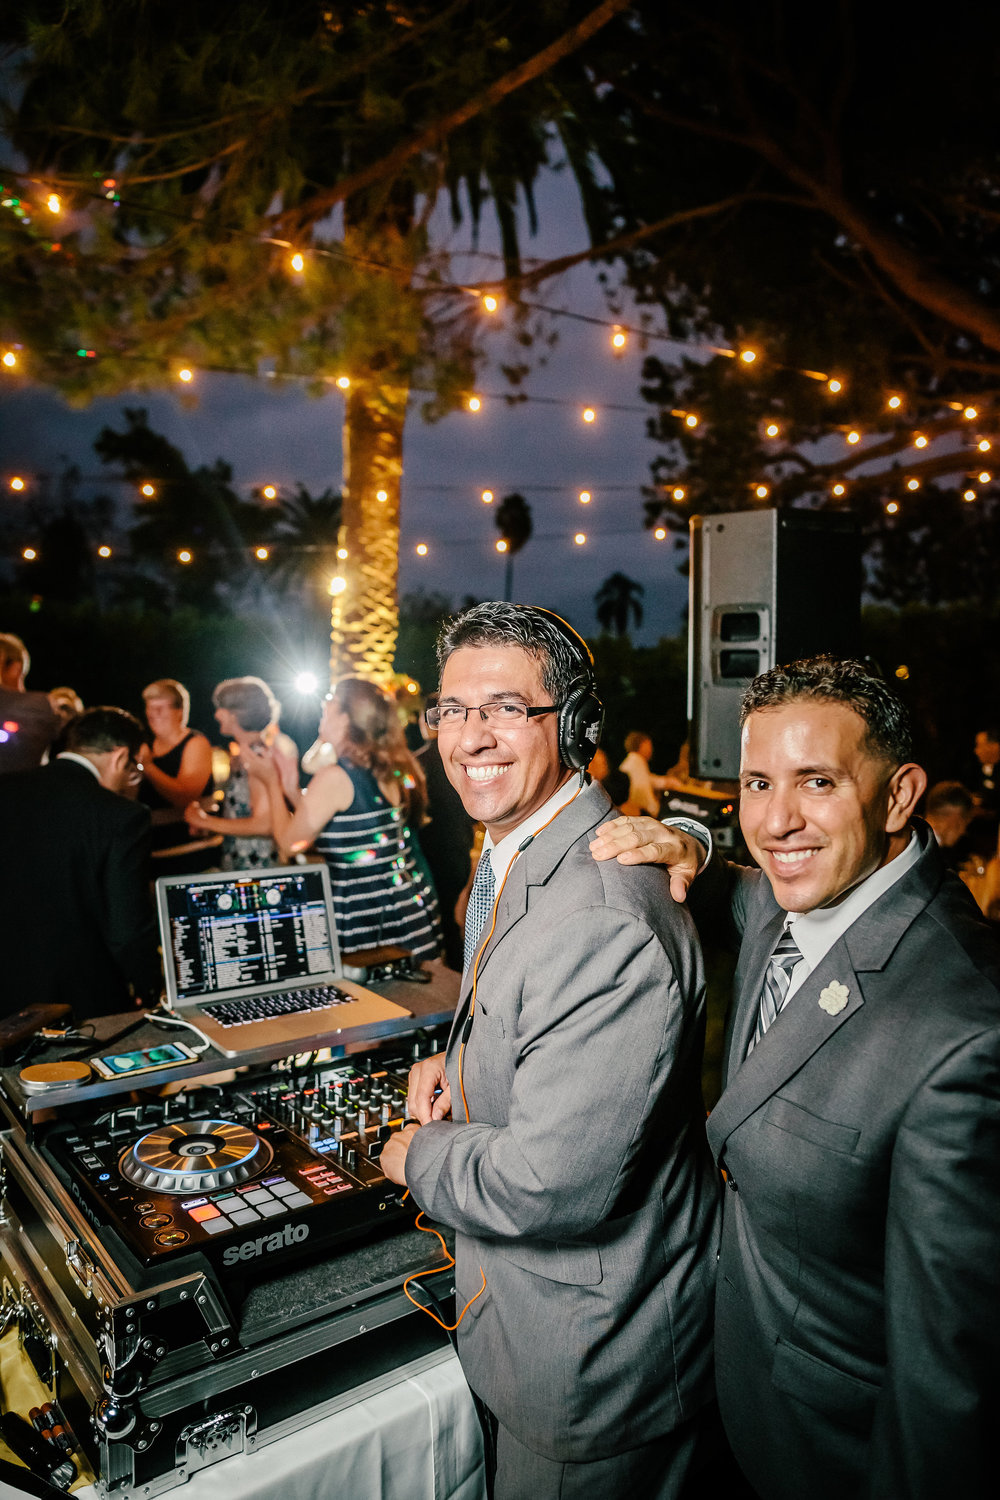 santabarbaraweddingstyle.com | DJ Zeke | Music and DJ